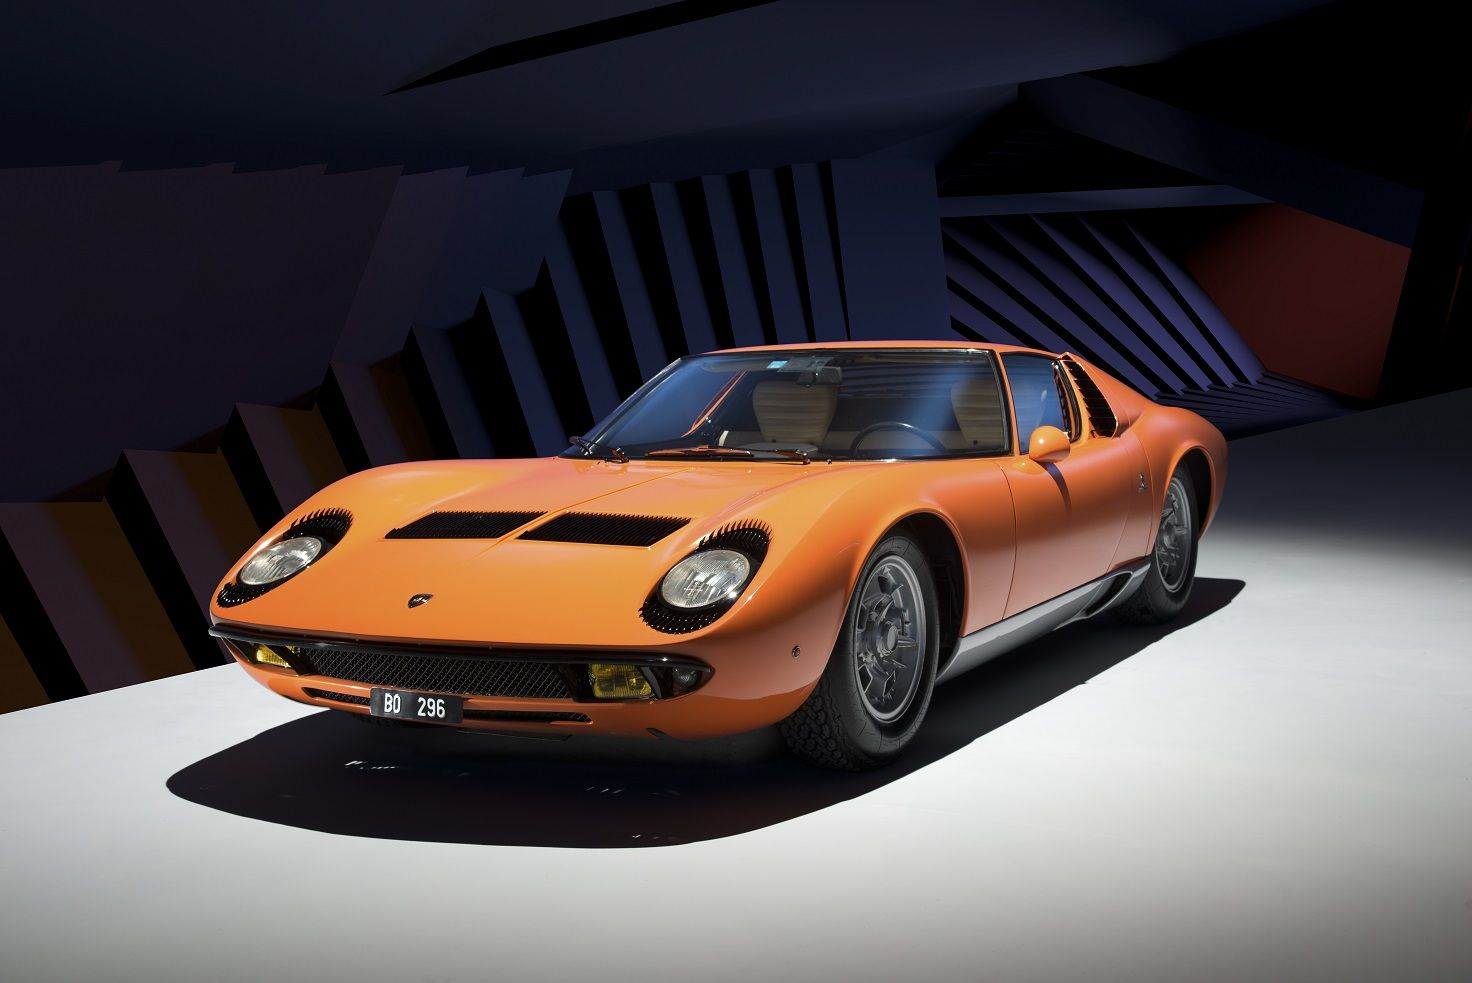 Grand Basel—The Art Basel Of Cars—Opens In Switzerland